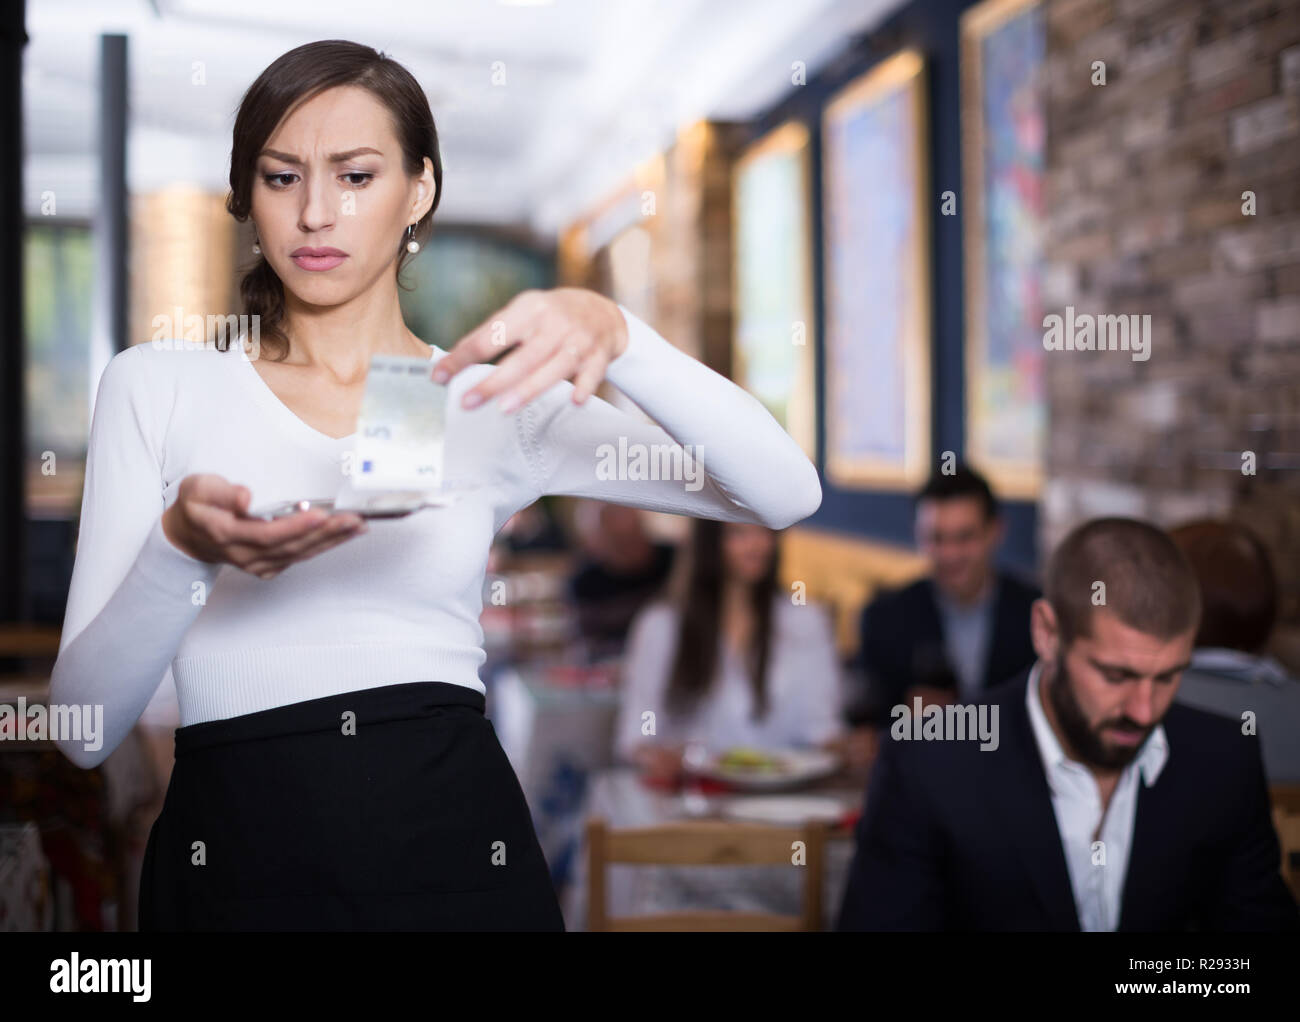 Surprised waitress woman  considering  a tray with money in a restaurant - Stock Image